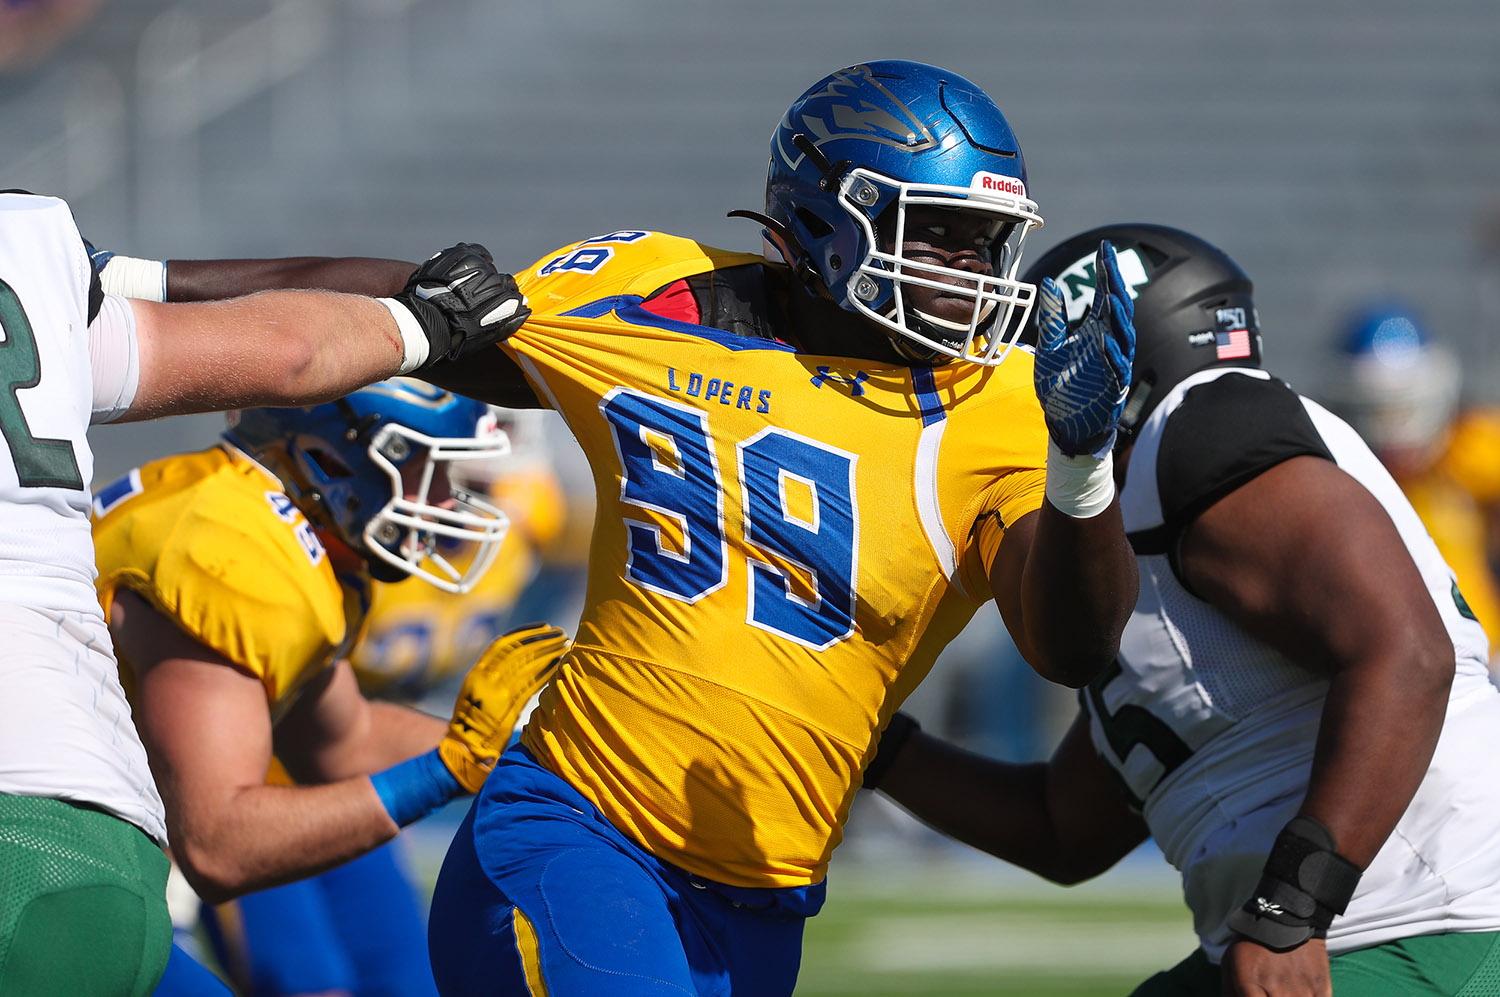 Hinwa Allieu (99) played football for UNK from 2016-19, recording 160 tackles and 15.5 sacks for the Lopers. The three-time All-MIAA selection signed with the Atlanta Falcons as an undrafted free agent in April 2020.